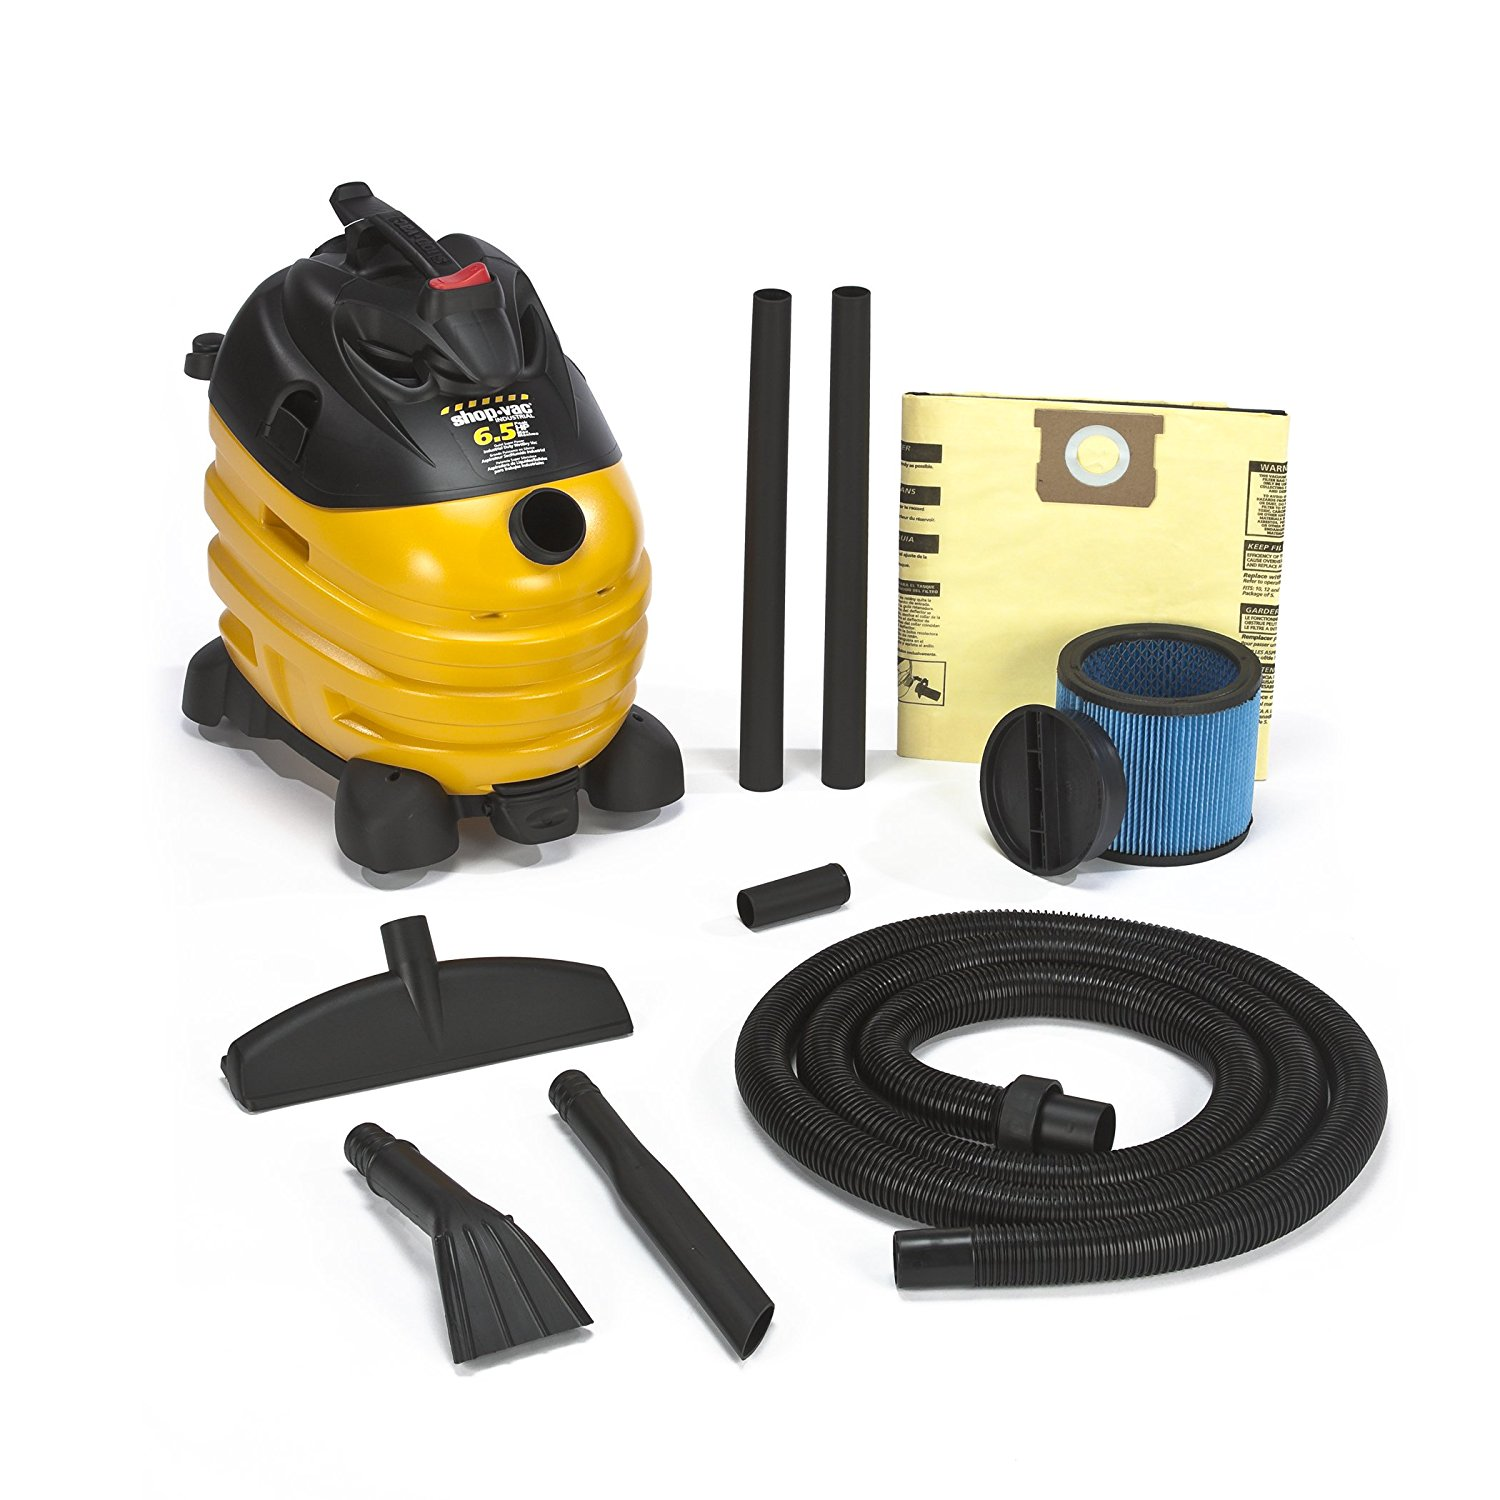 Shop-Vac 5873410 Right Stuff